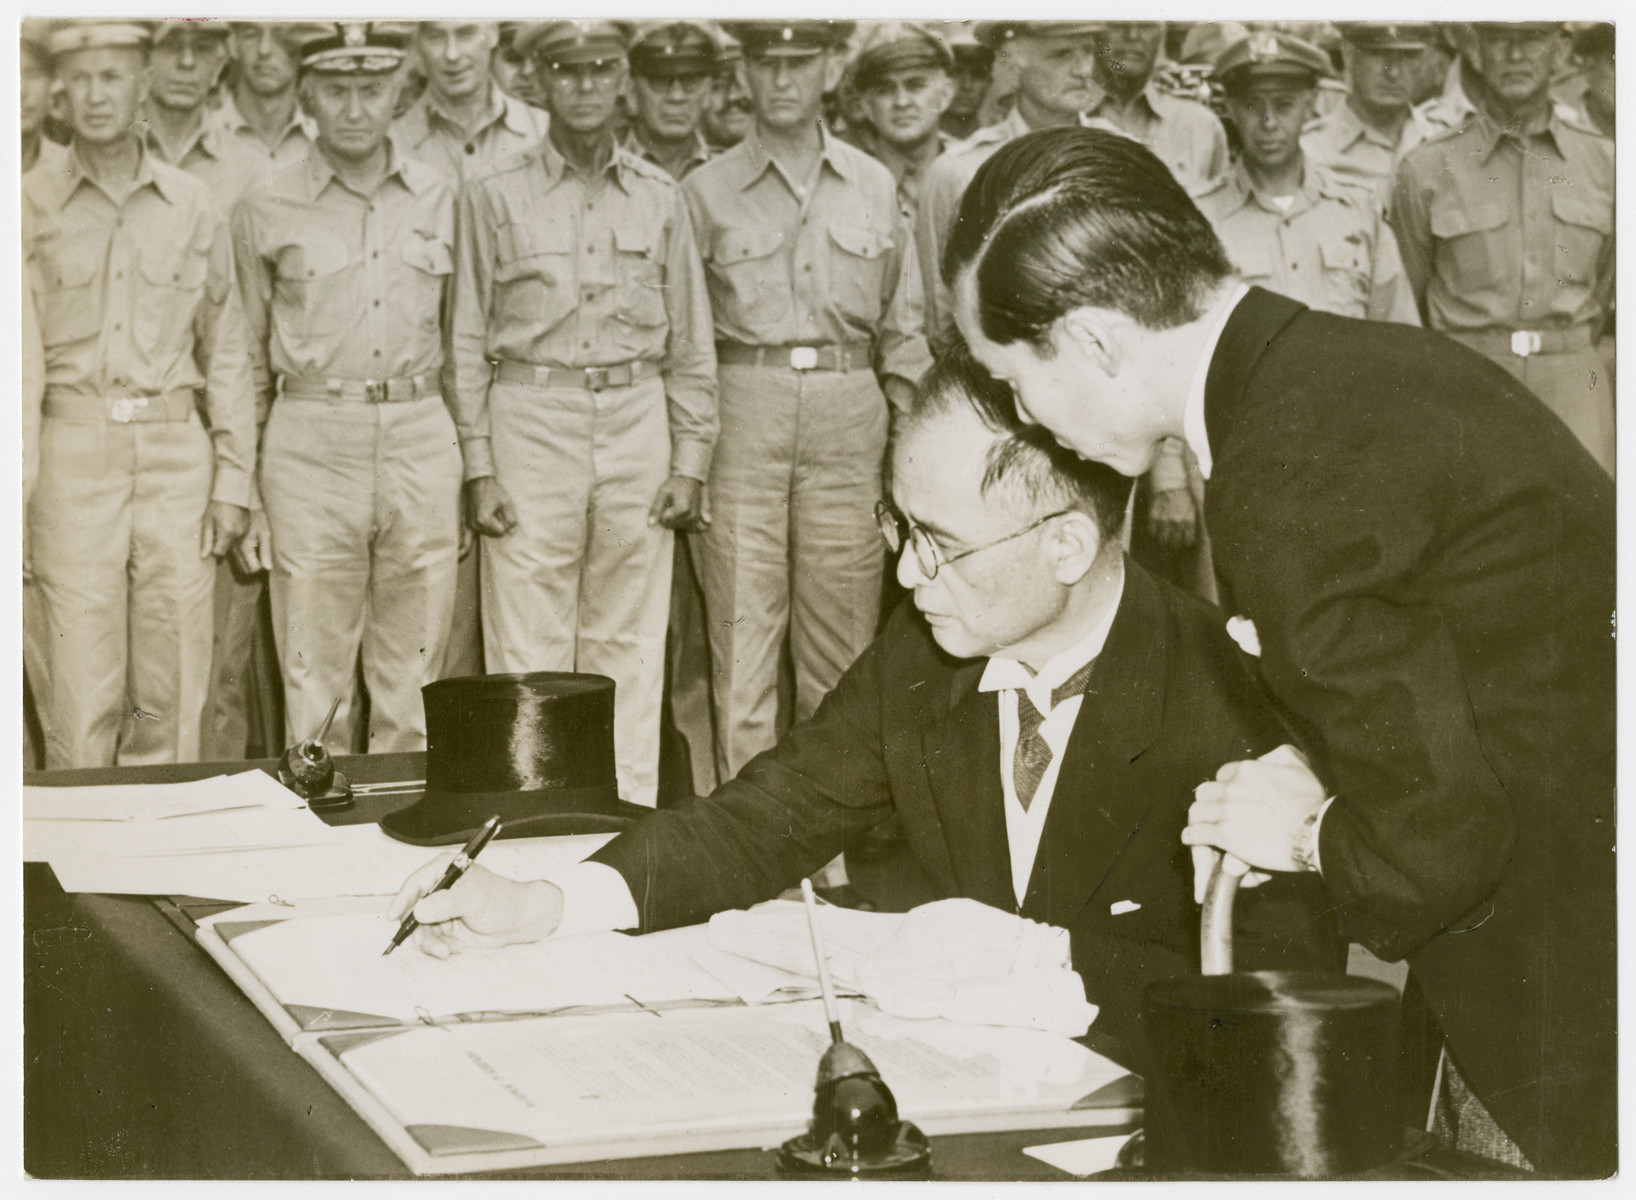 Japanese Foreign Minister, Mamoru Shigemitsu, signs the surrender documents on behalf of his government.  The formal capitulation ceremonies took palce aboard the U.S. battleship Missouri in Tokyo Bay, south of Japan's capital on Sept. 1, 1945.